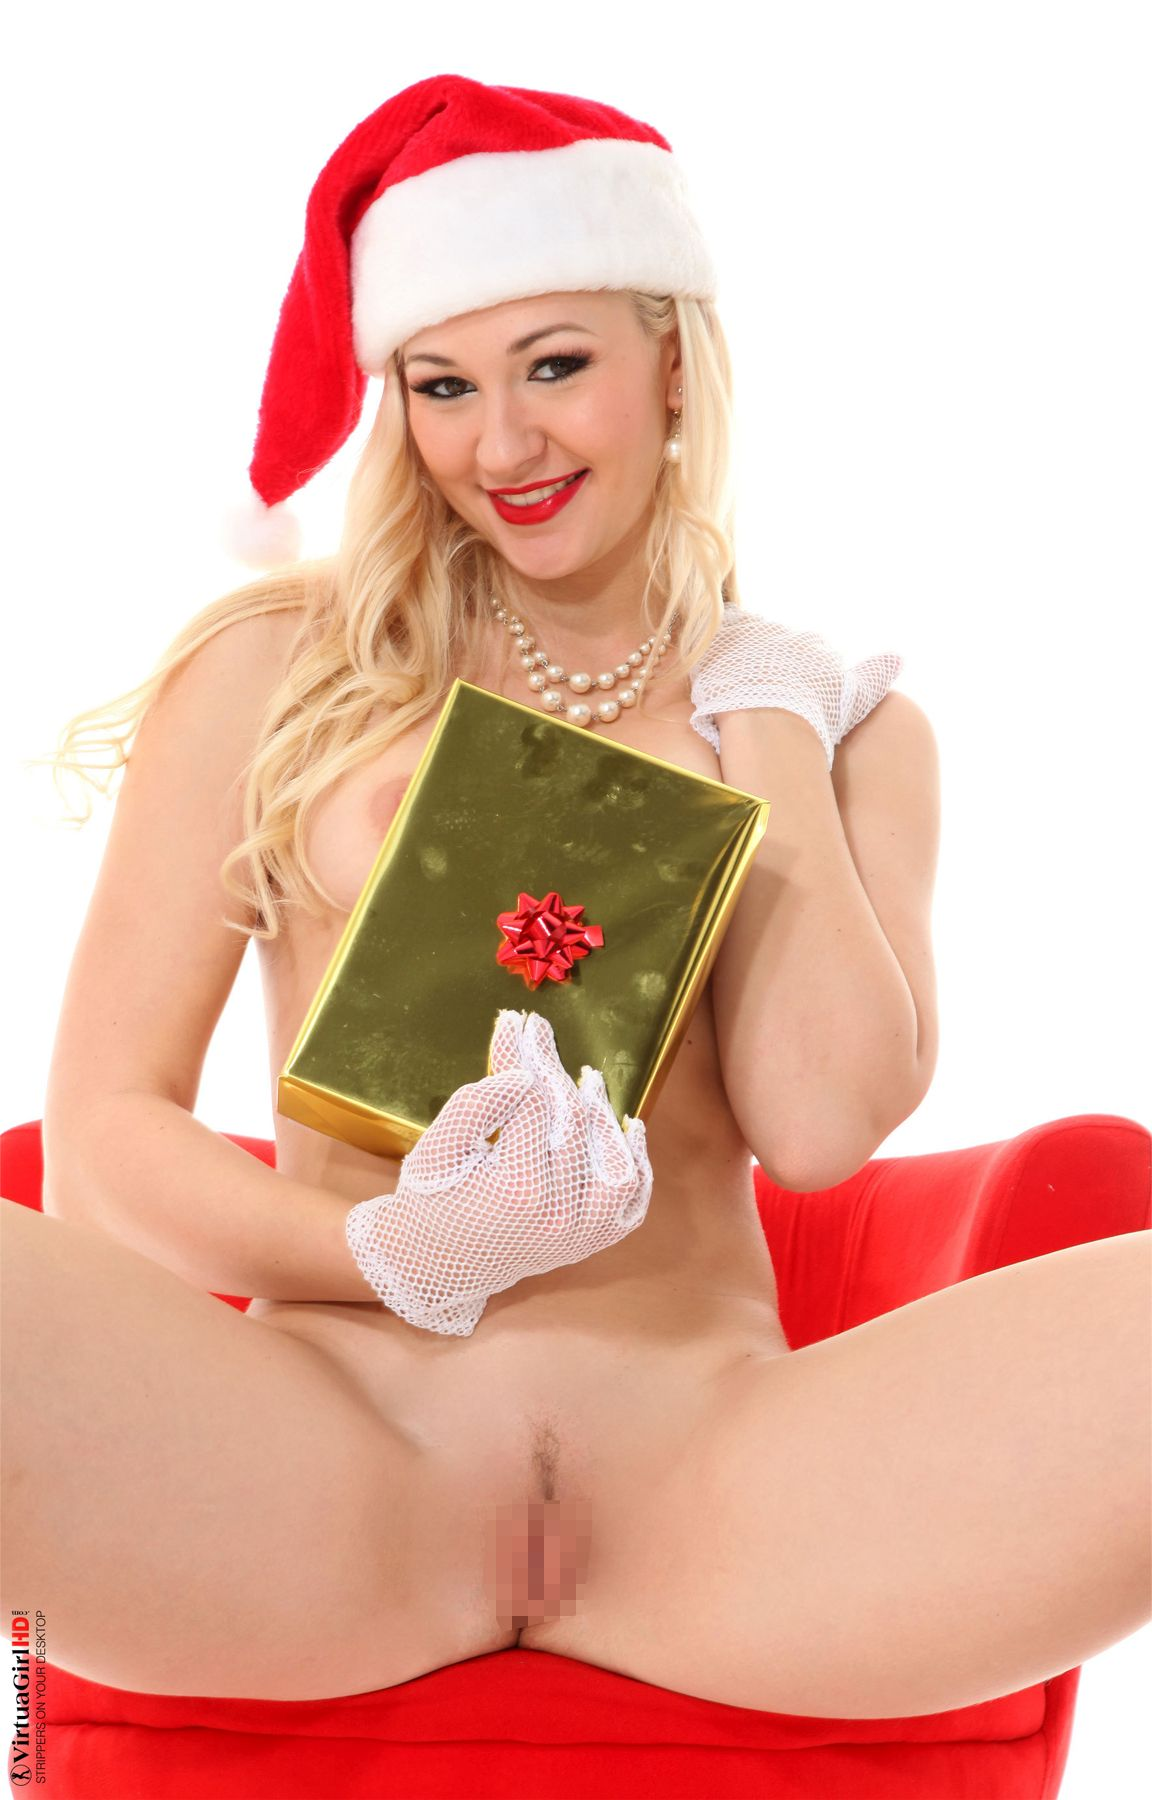 VirtuaGirl - Tracy Lindsay - CHRISTMAS GIFT 02